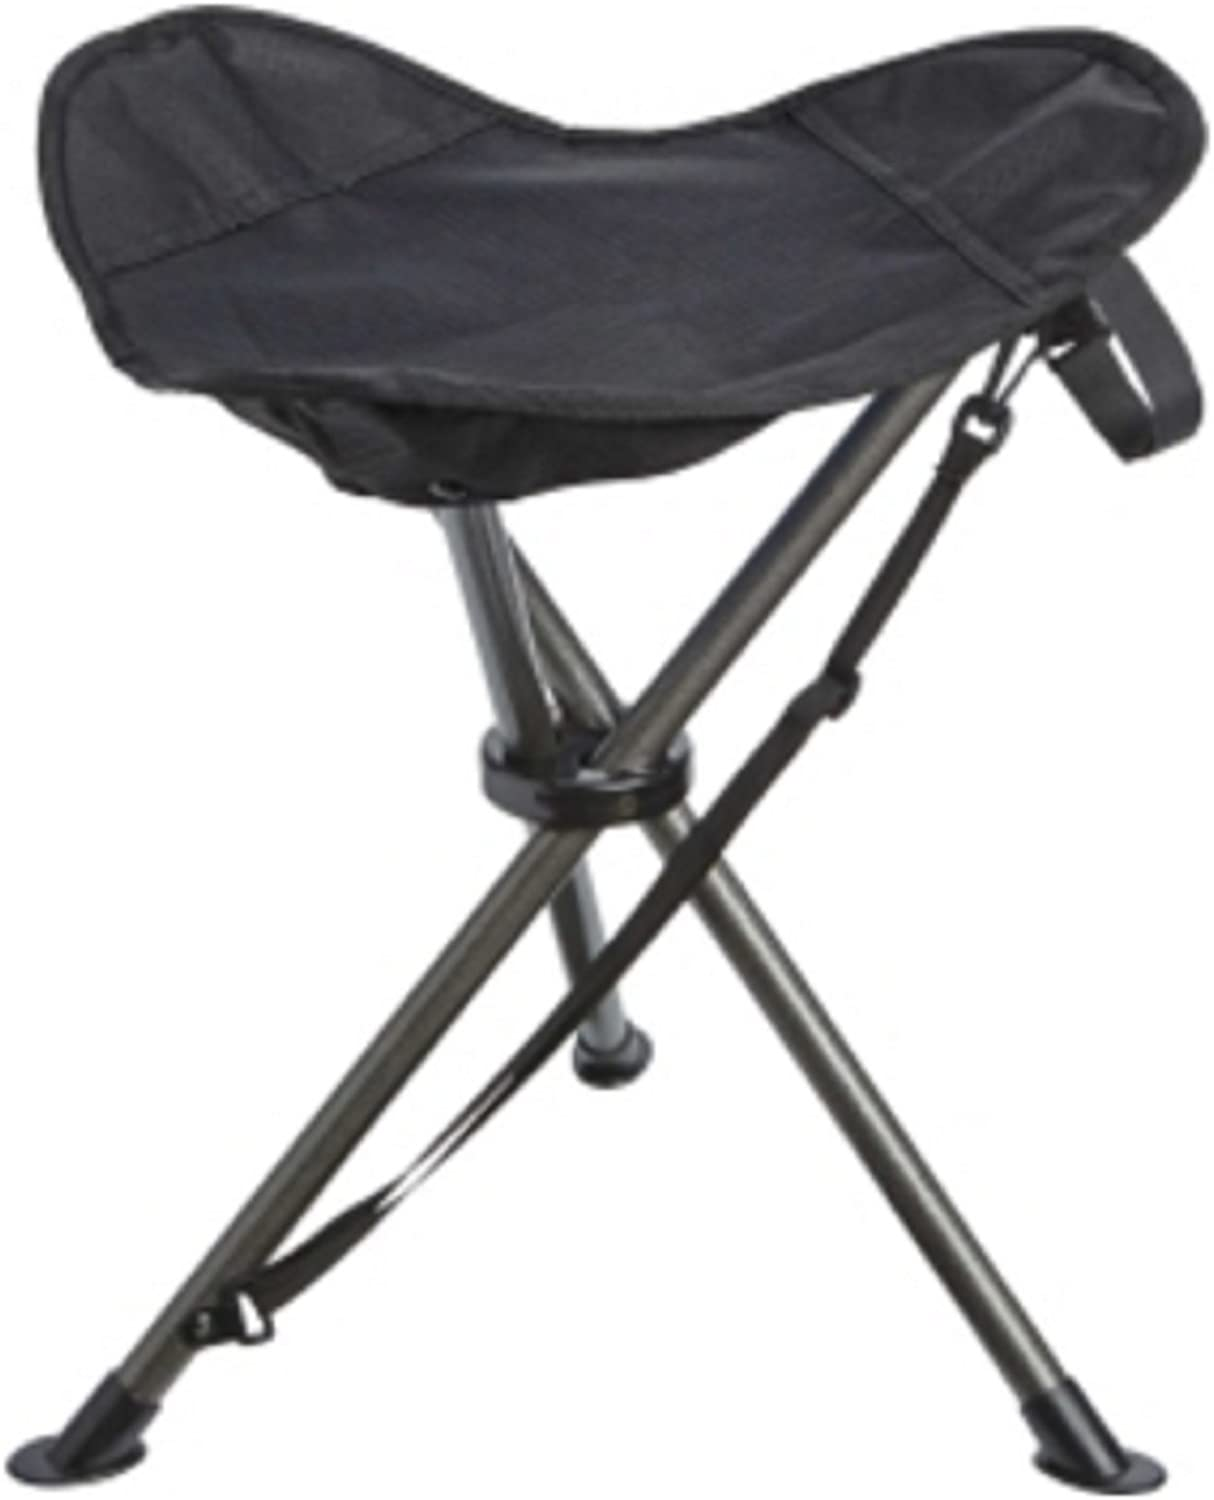 Quest Oversized Folding Stool in Several Colors, Portable for Camping, Sporting Events, or Back Yard